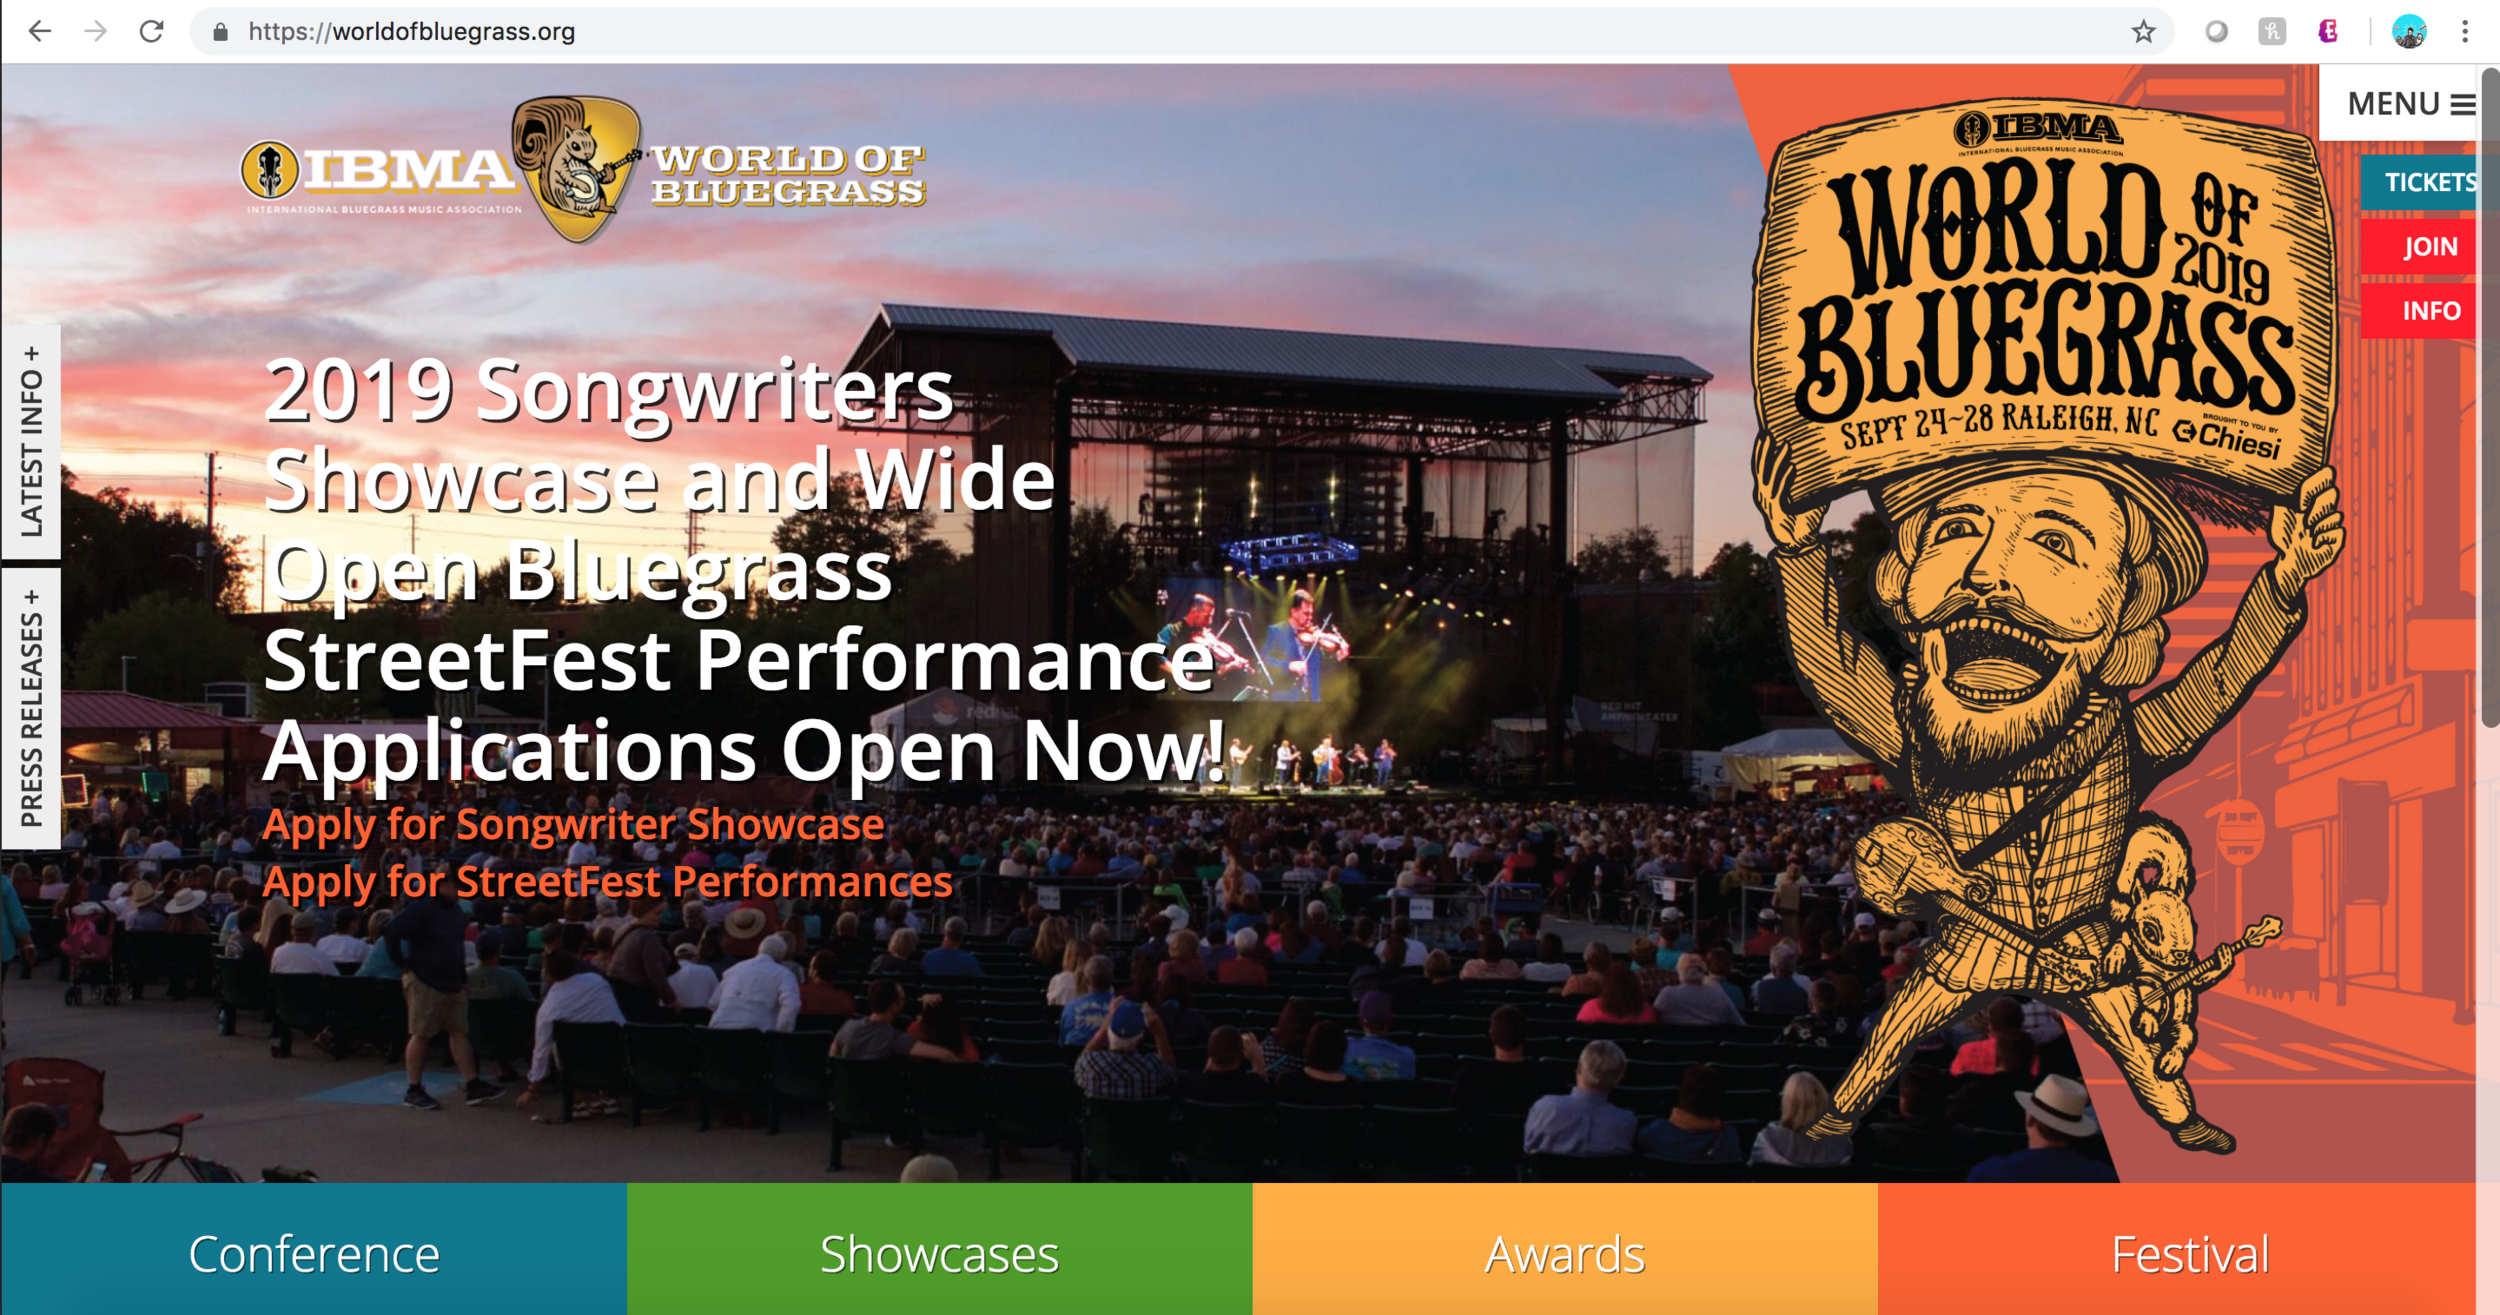 IBMA_WebsiteHeader_Screenshot201903.png